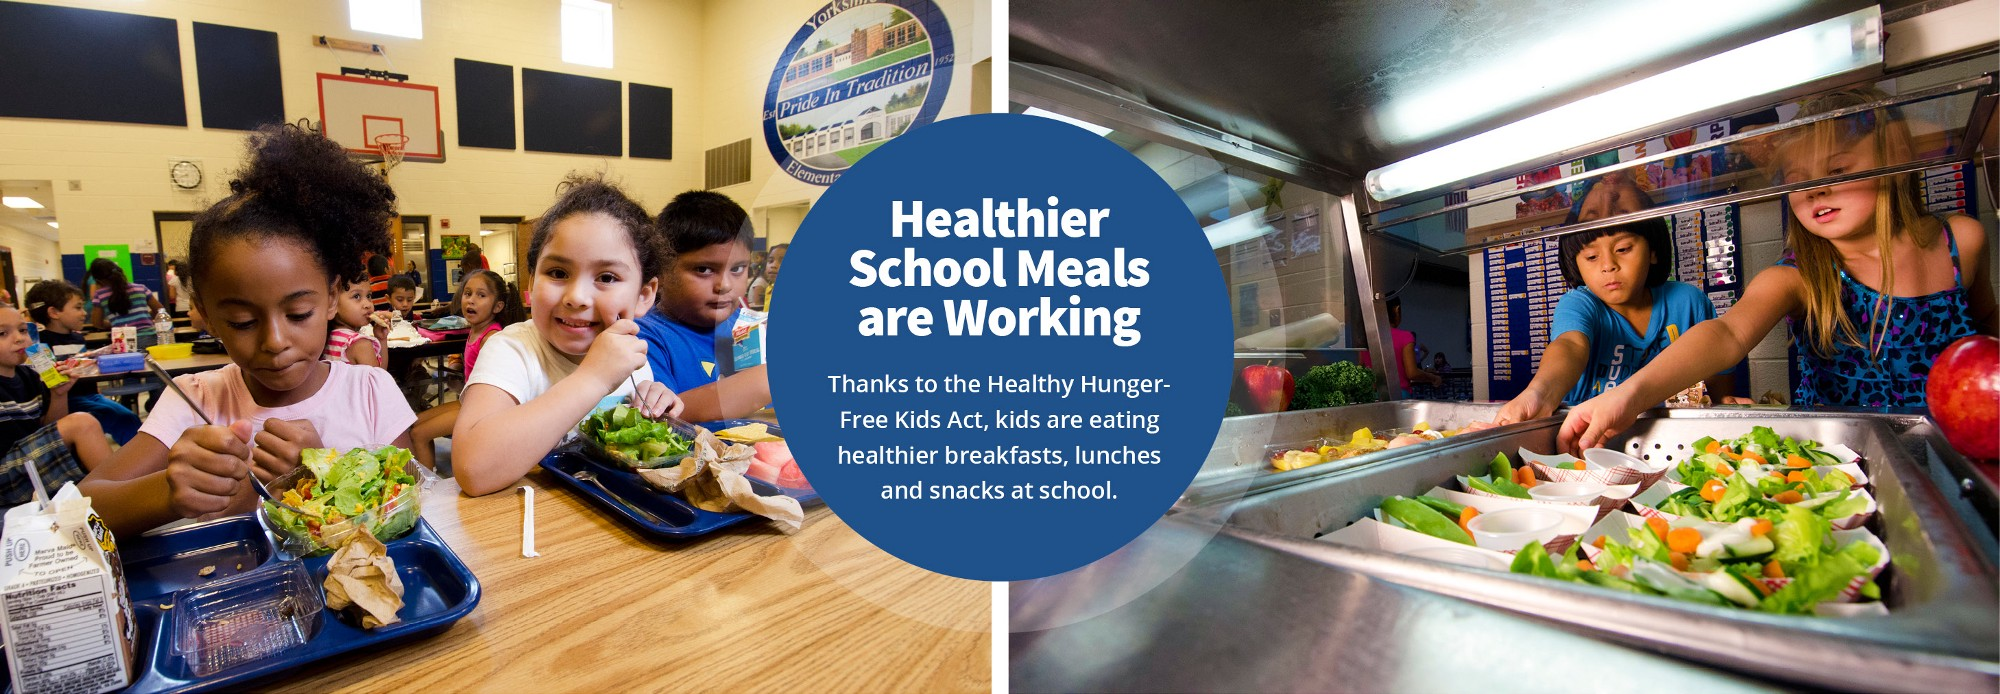 healthy meals for children act The study inspired the passage of the healthy, hunger-free kids act, which set new nutrition standards, even for schools that don't provide free lunches the law limits calories and mandates.